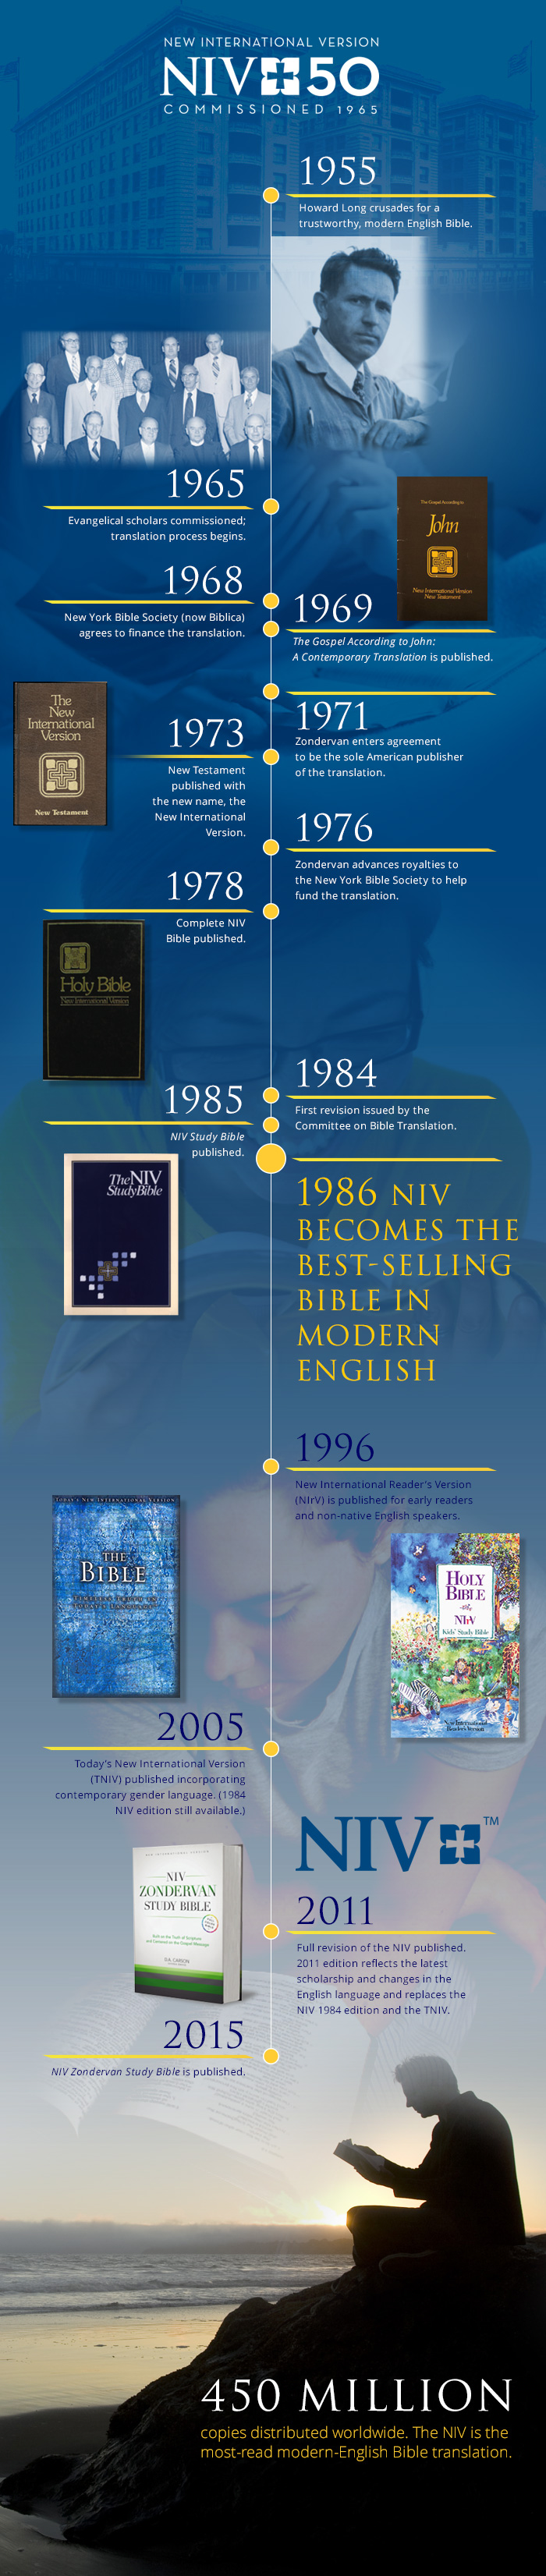 Click to enlarge this NIV Bible Timeline